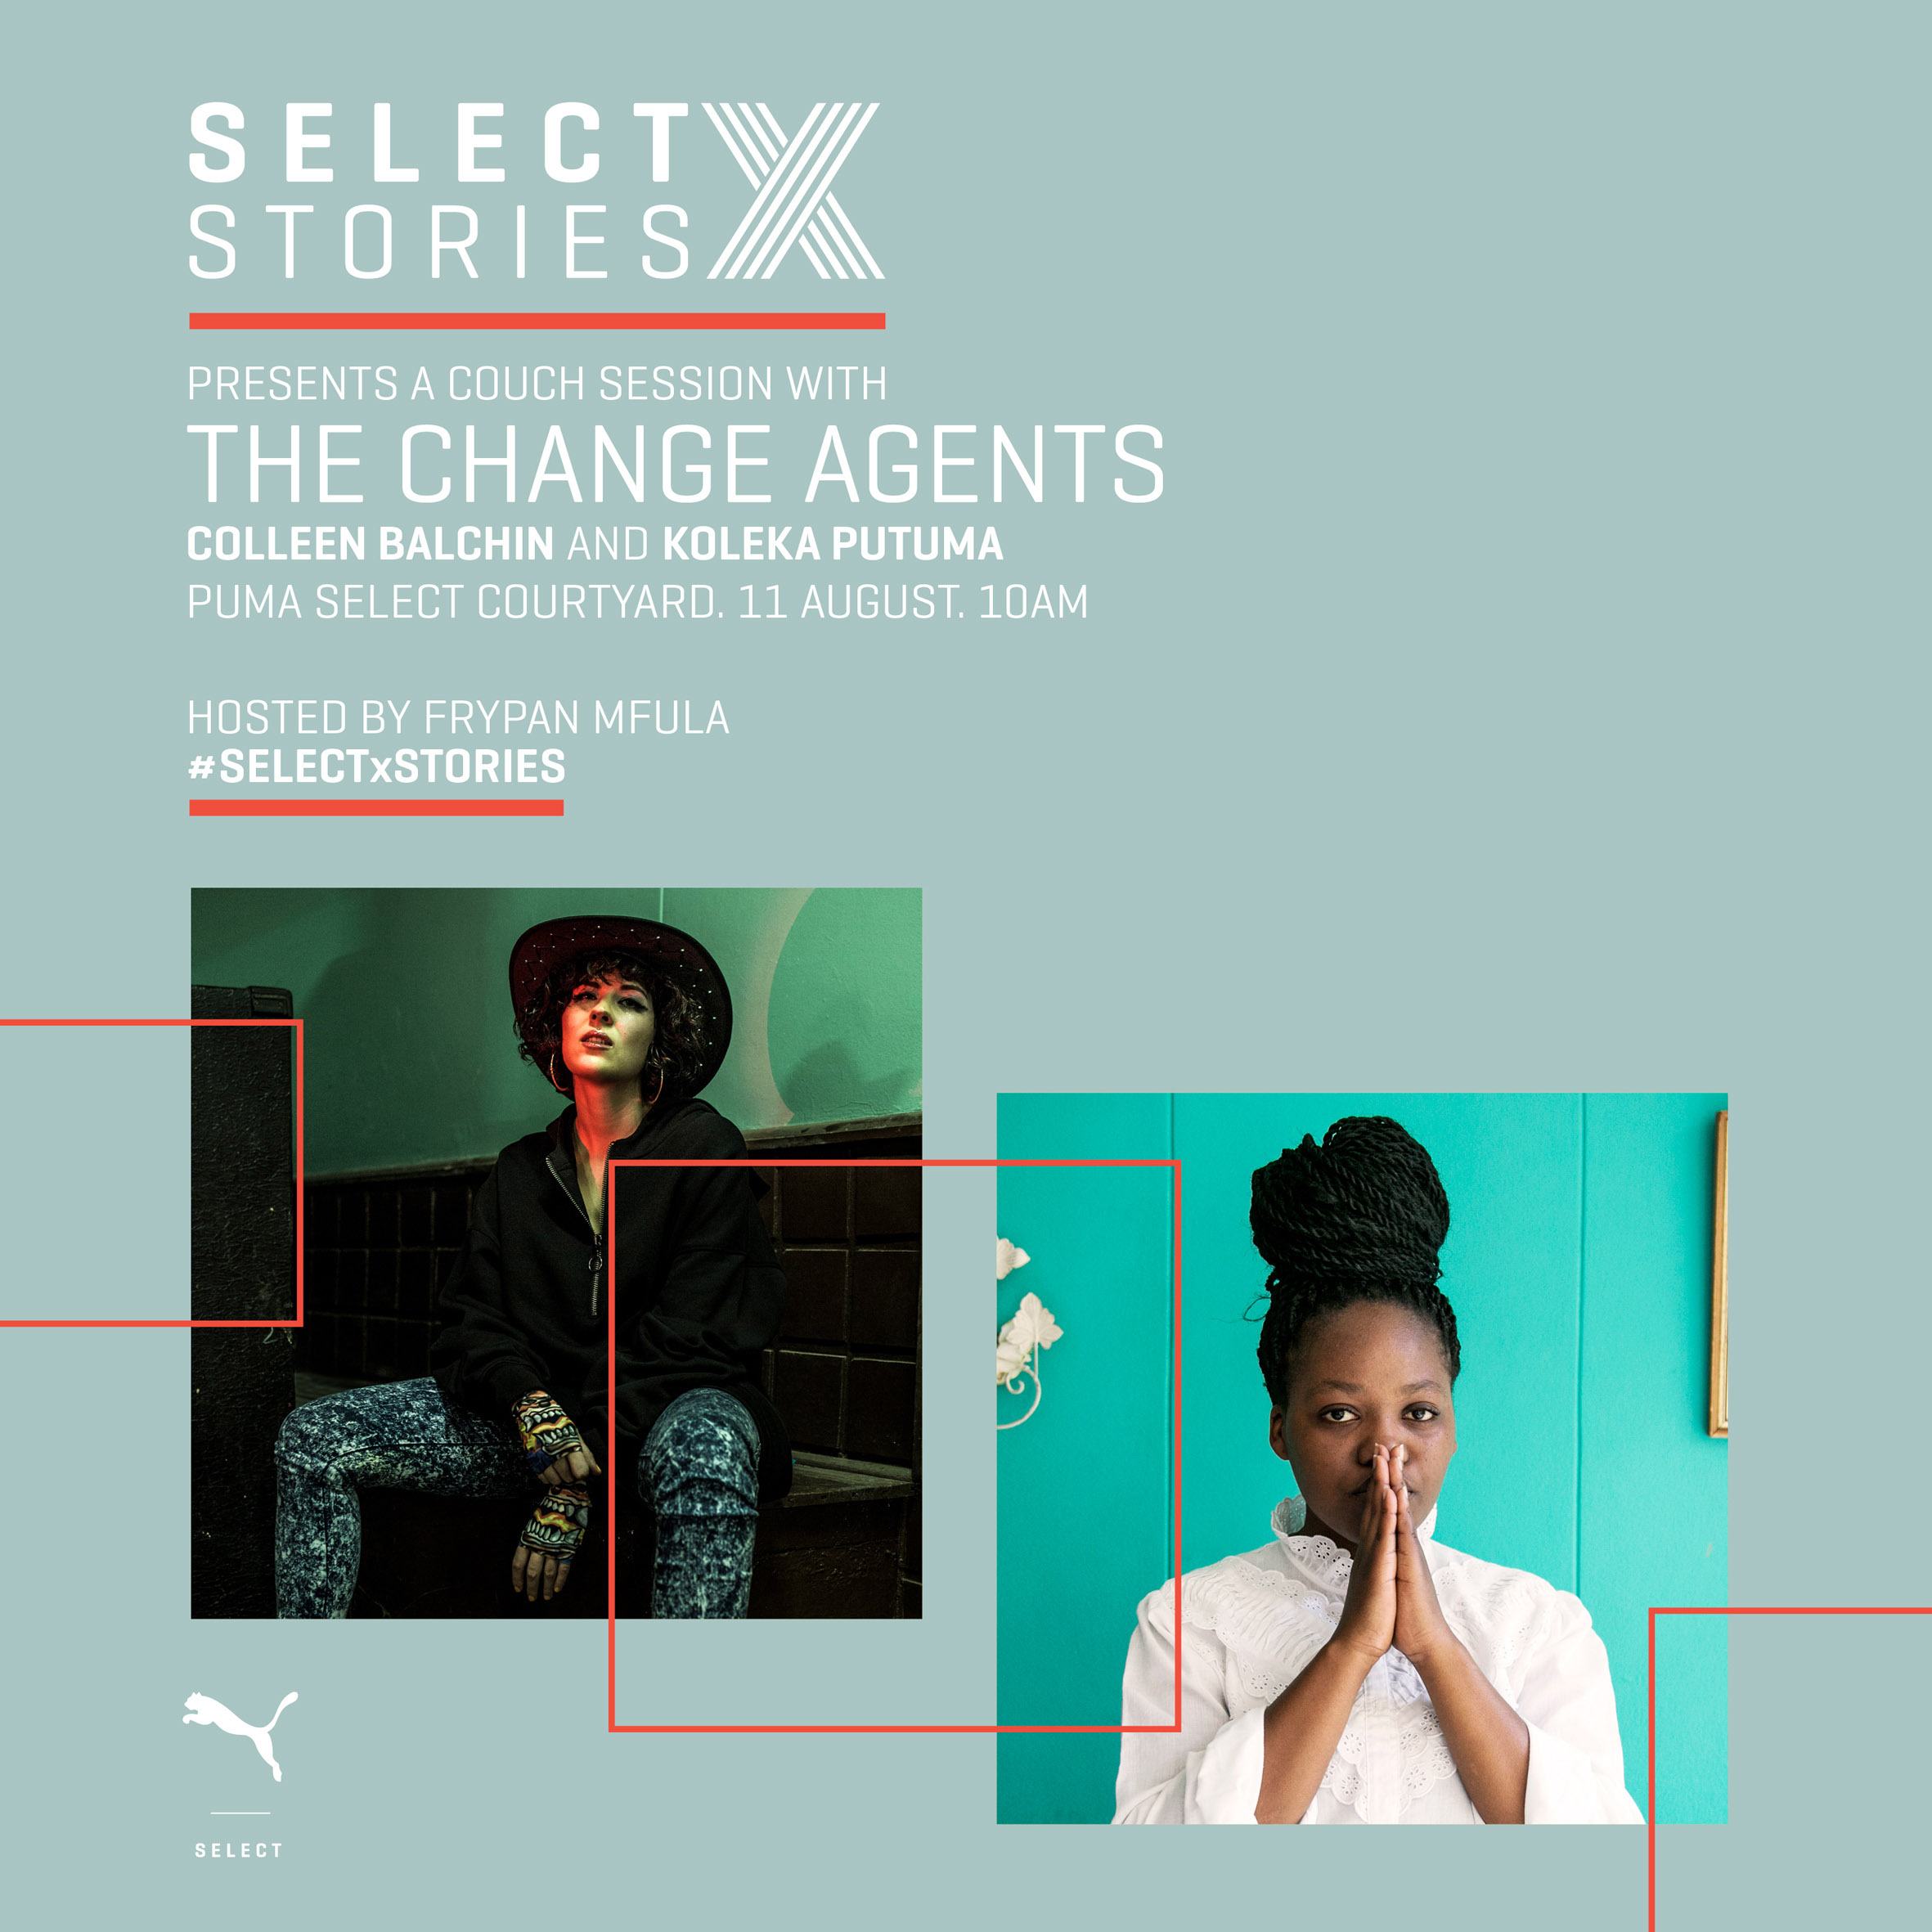 """Change Agents"" Colleen Balchin & Koleka Putuma for latest PUMA SELECT x STORIES on 11th August"